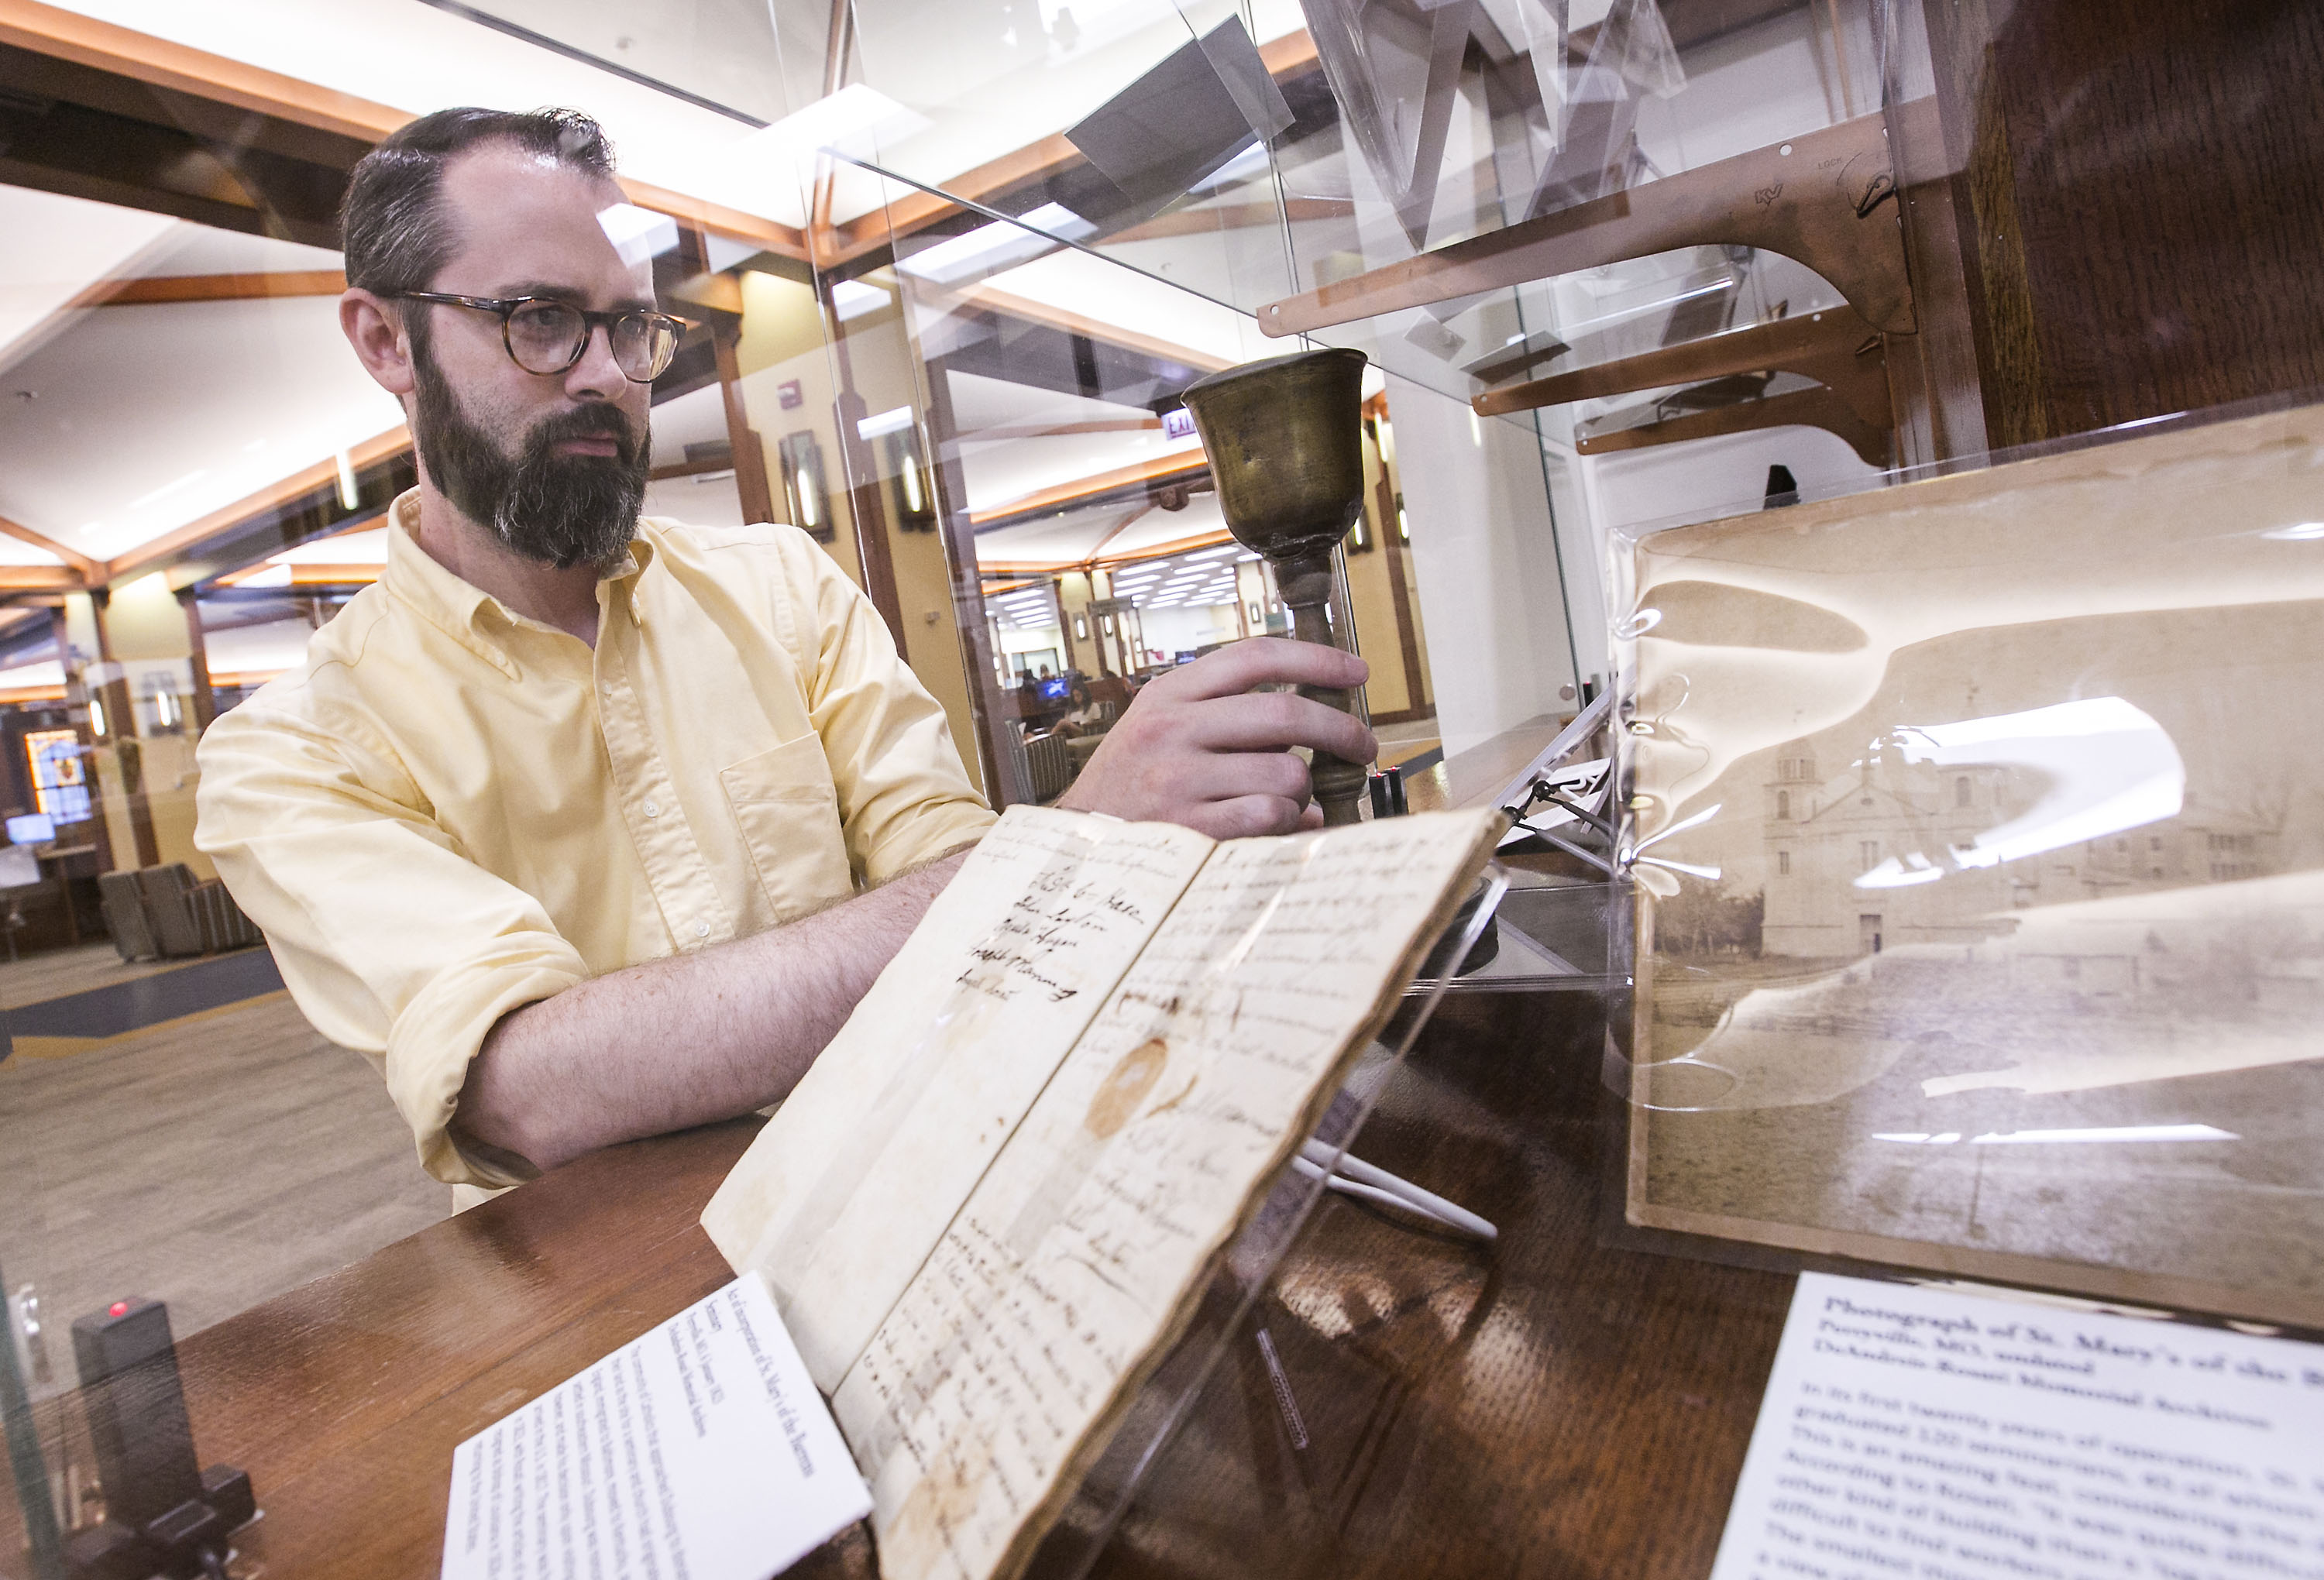 Andrew Rea, DePaul's Vincentian Librarian, places a small wooden chalice into a display case as he prepares for an exhibit of Vincentian artifacts at the John T. Richardson Library. (DePaul University/Jamie Moncrief)